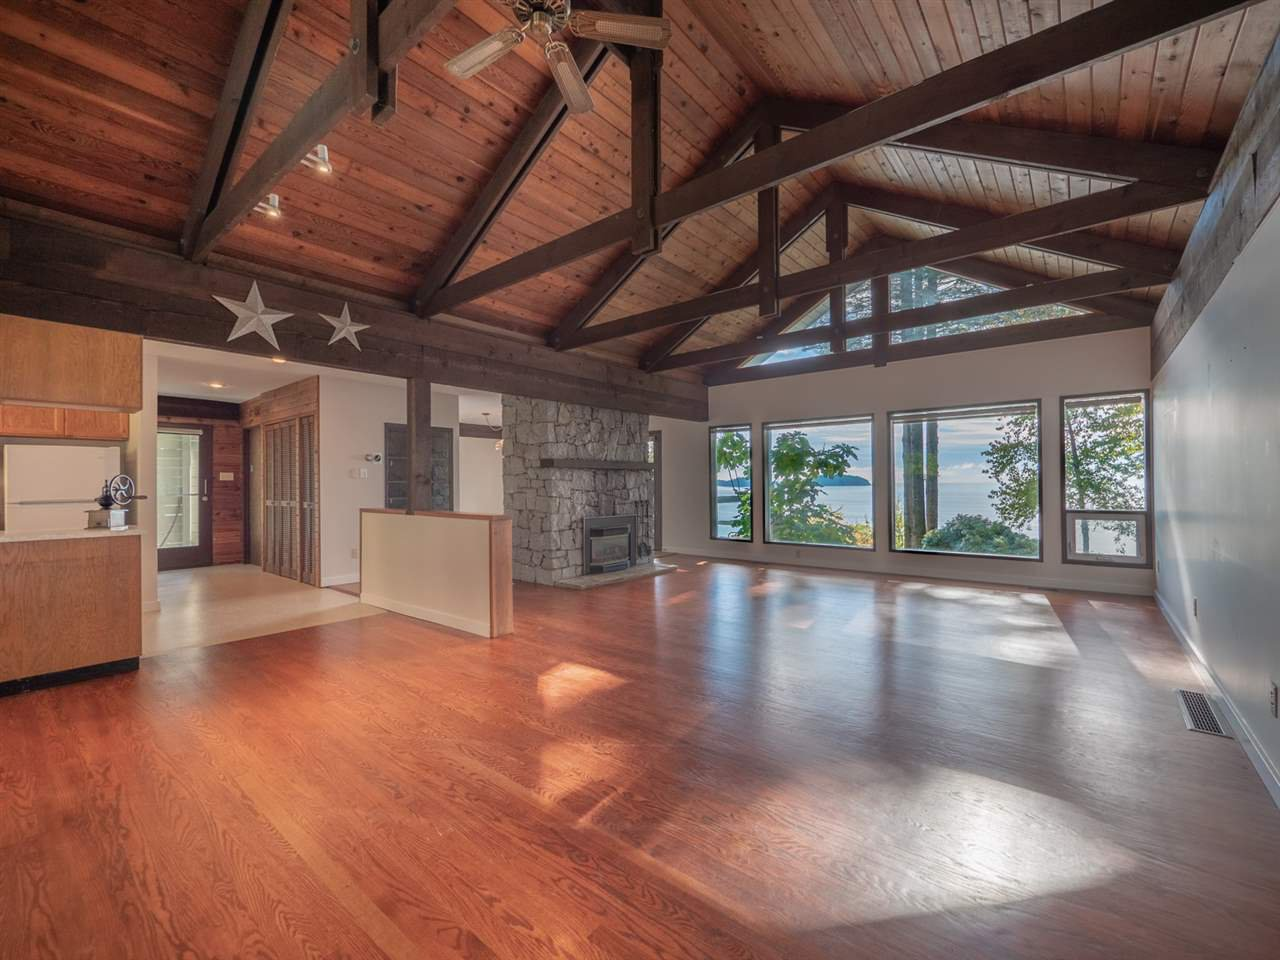 Photo 14: Photos: 877 GOWER POINT Road in Gibsons: Gibsons & Area House for sale (Sunshine Coast)  : MLS®# R2419918